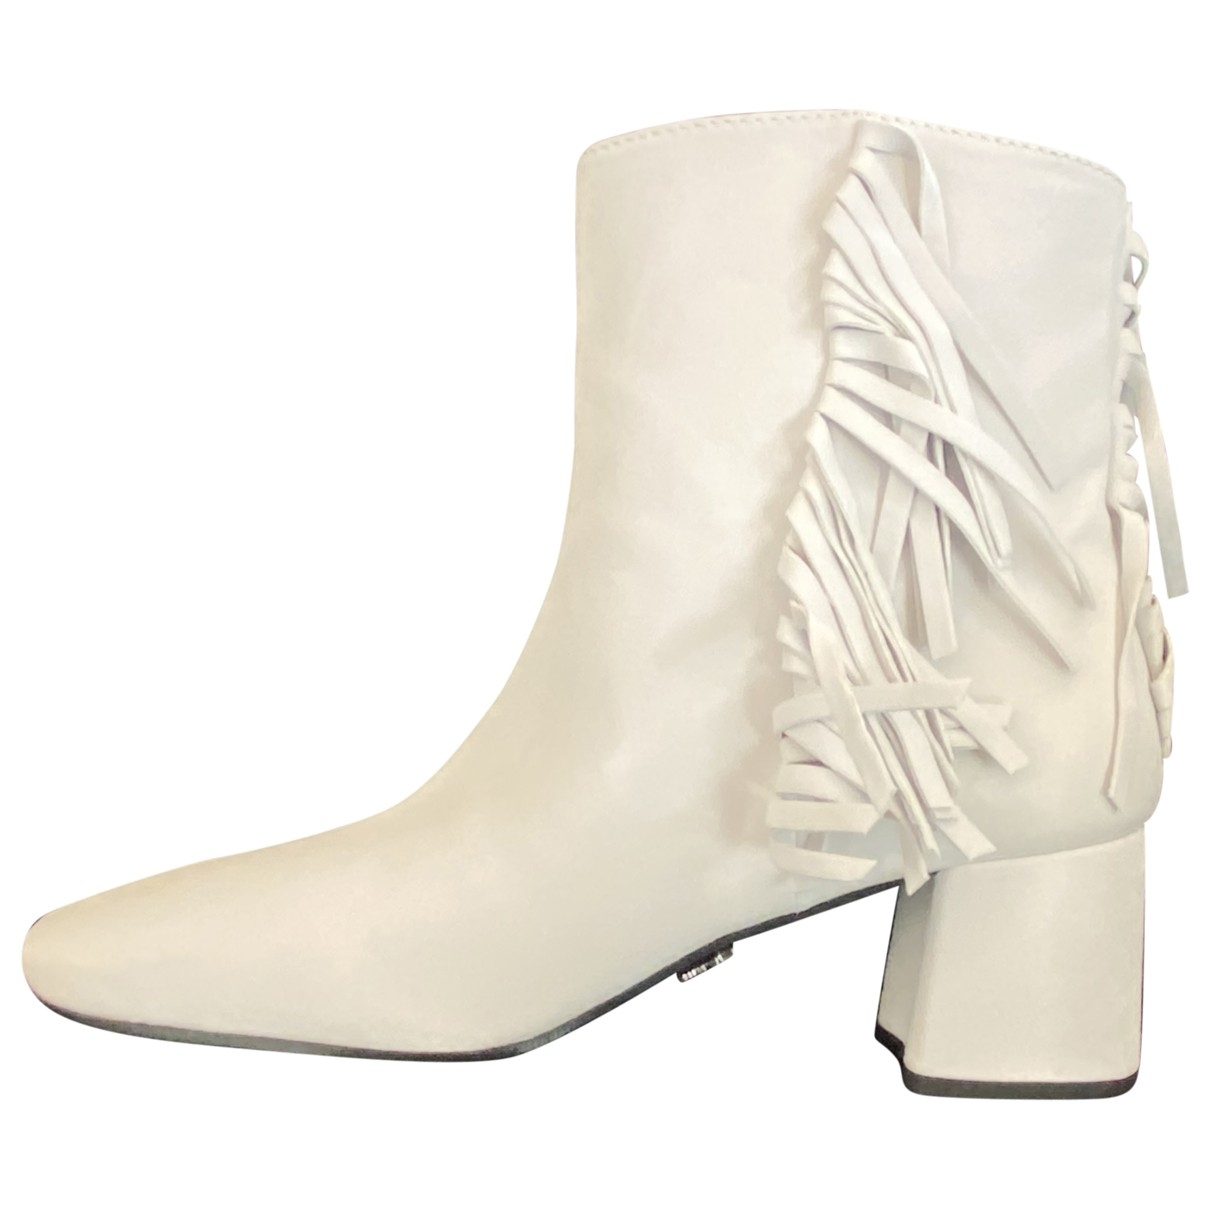 Prada \N White Leather Ankle boots for Women 40 EU